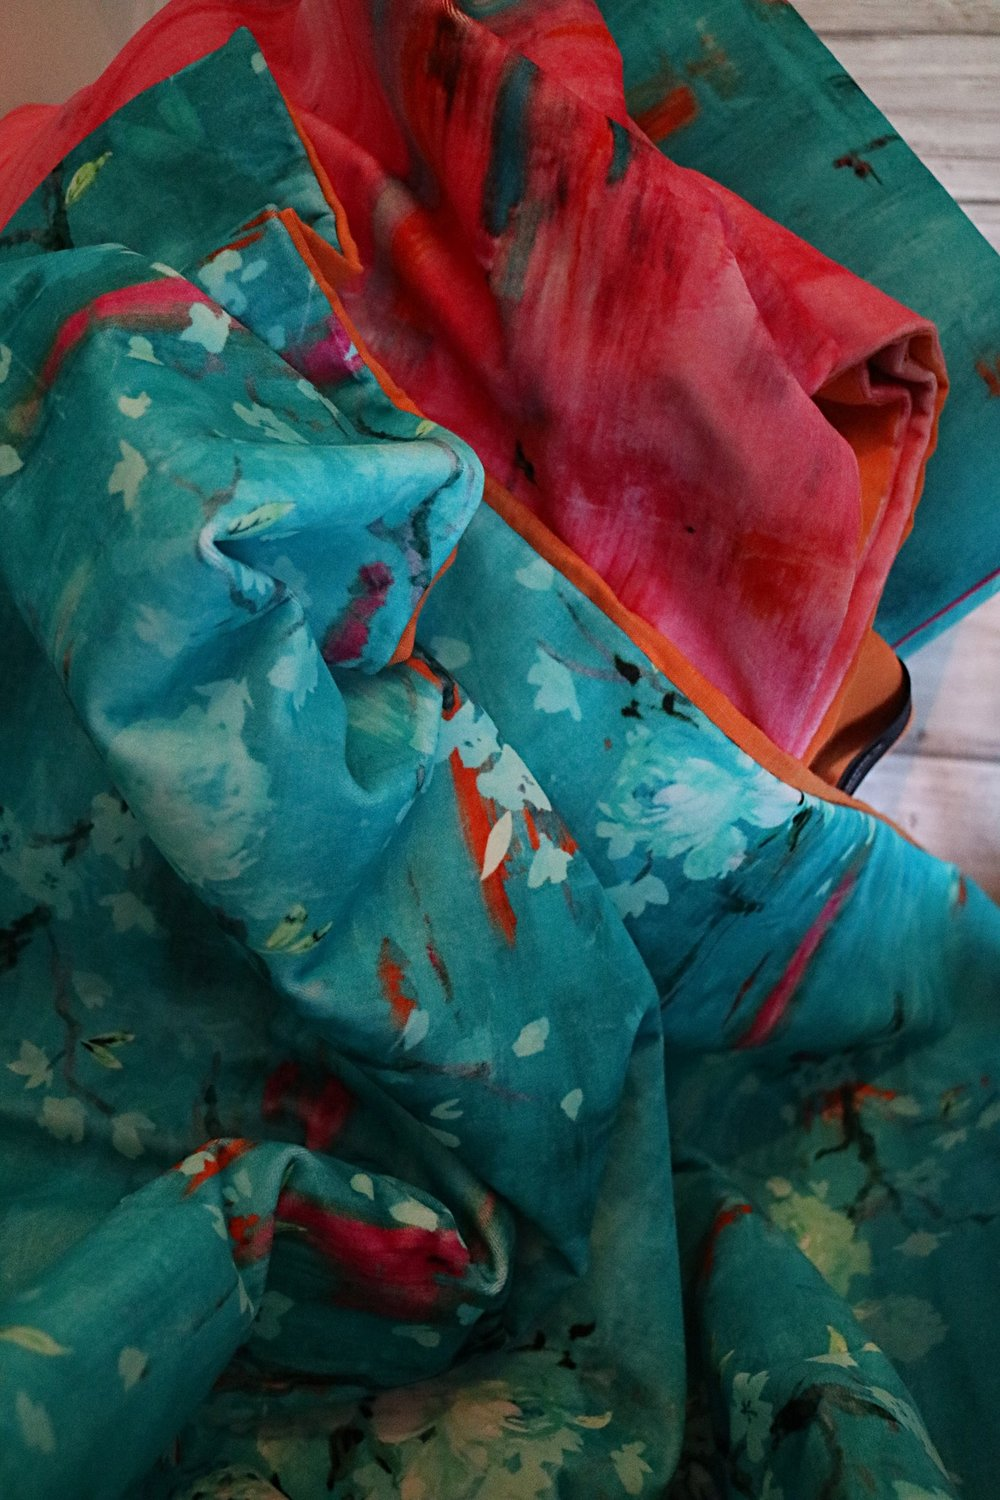 Cotton velvet throws in 'Perfumes of the Night' - Floral and Abstract Editions, made by Victoria Hill Bespoke